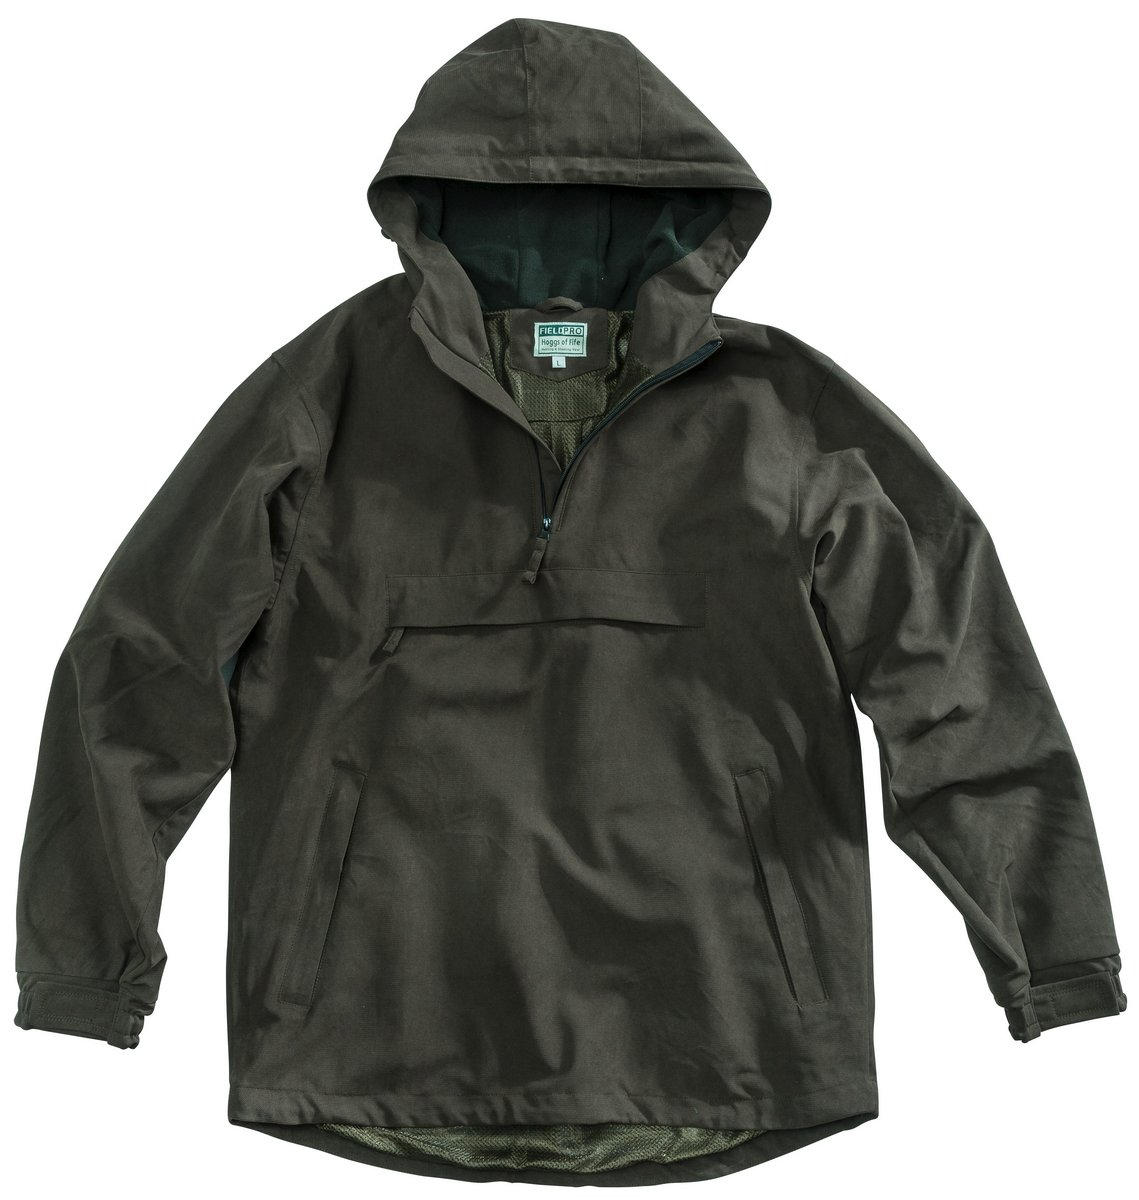 Struther Smock Field Jacket